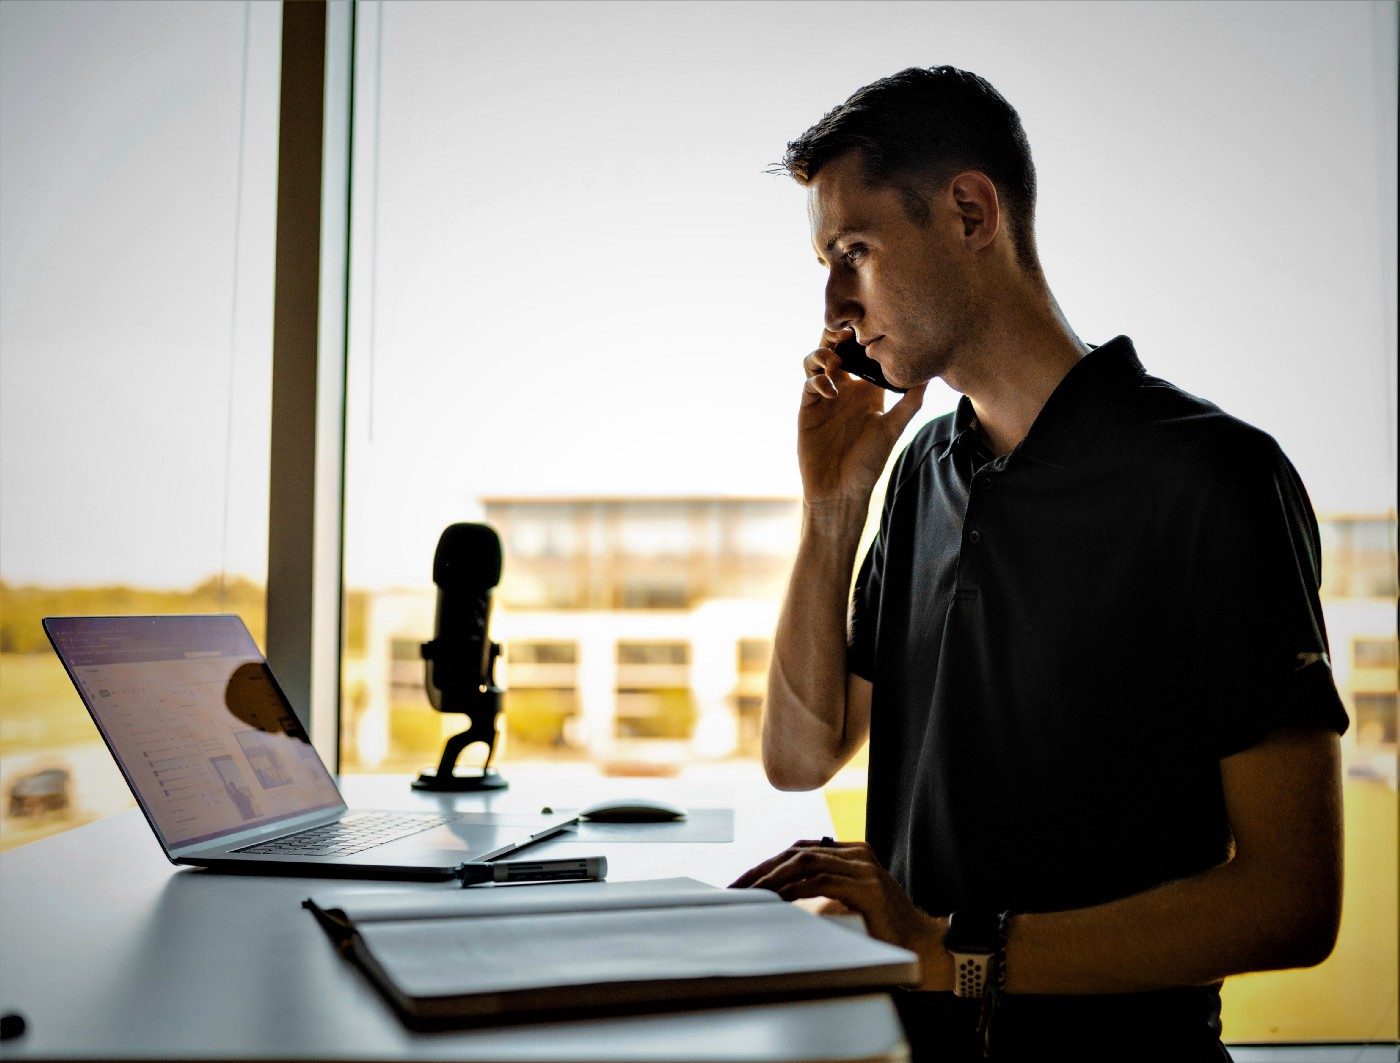 Young man wearing short sleeve black shirt talking on cell phone and sitting at desk with computer and microphone